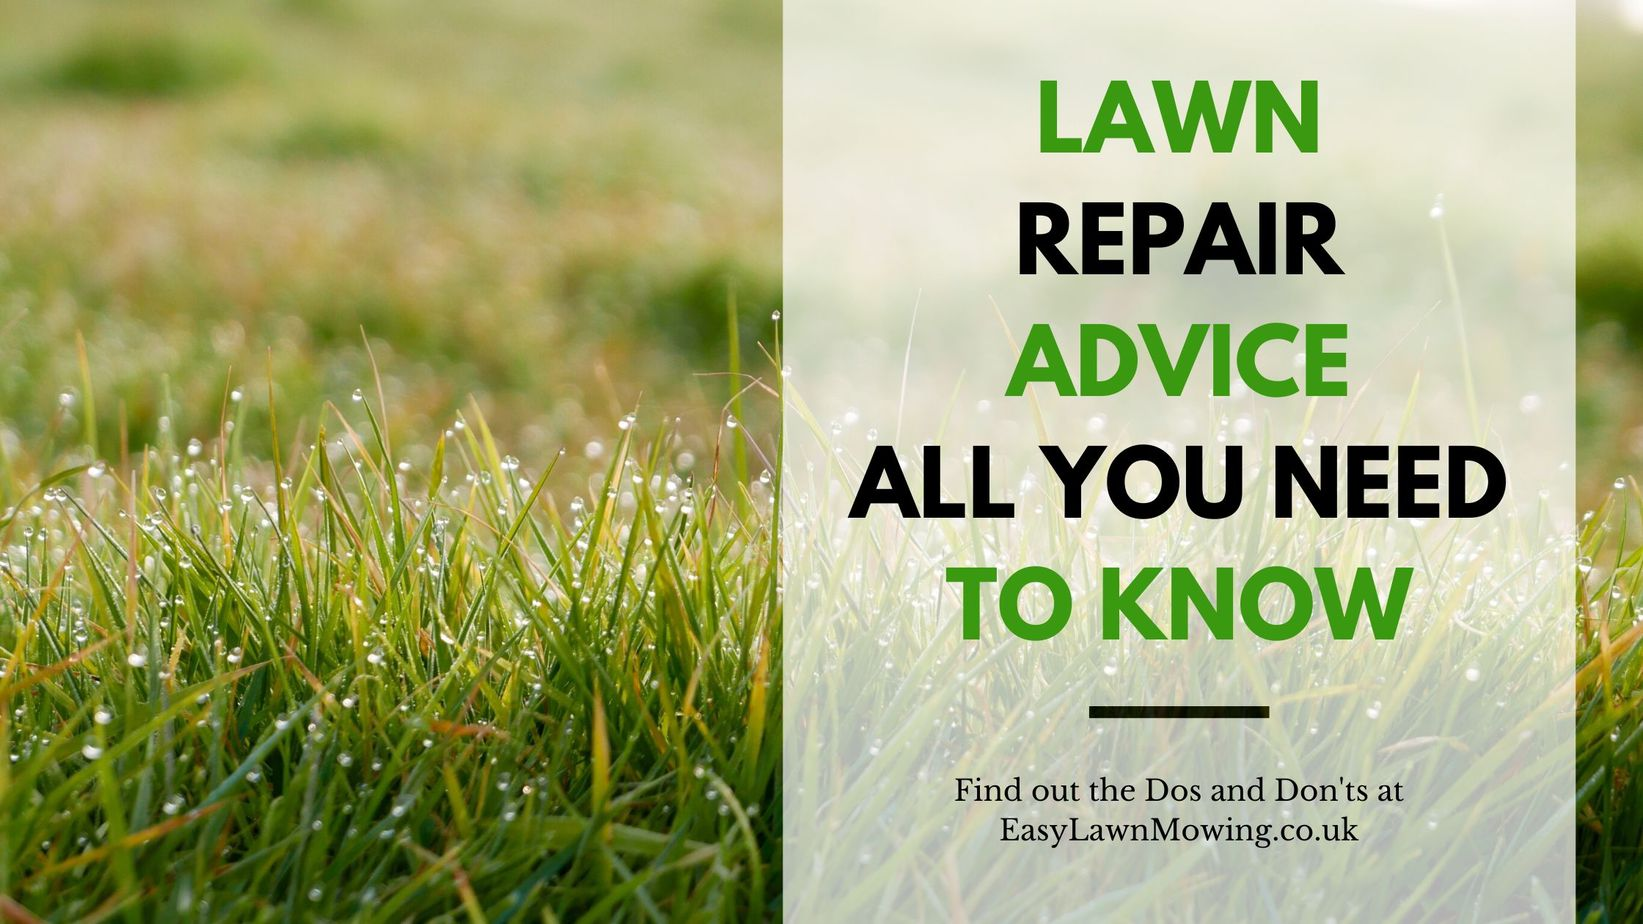 Lawn Repair Advice